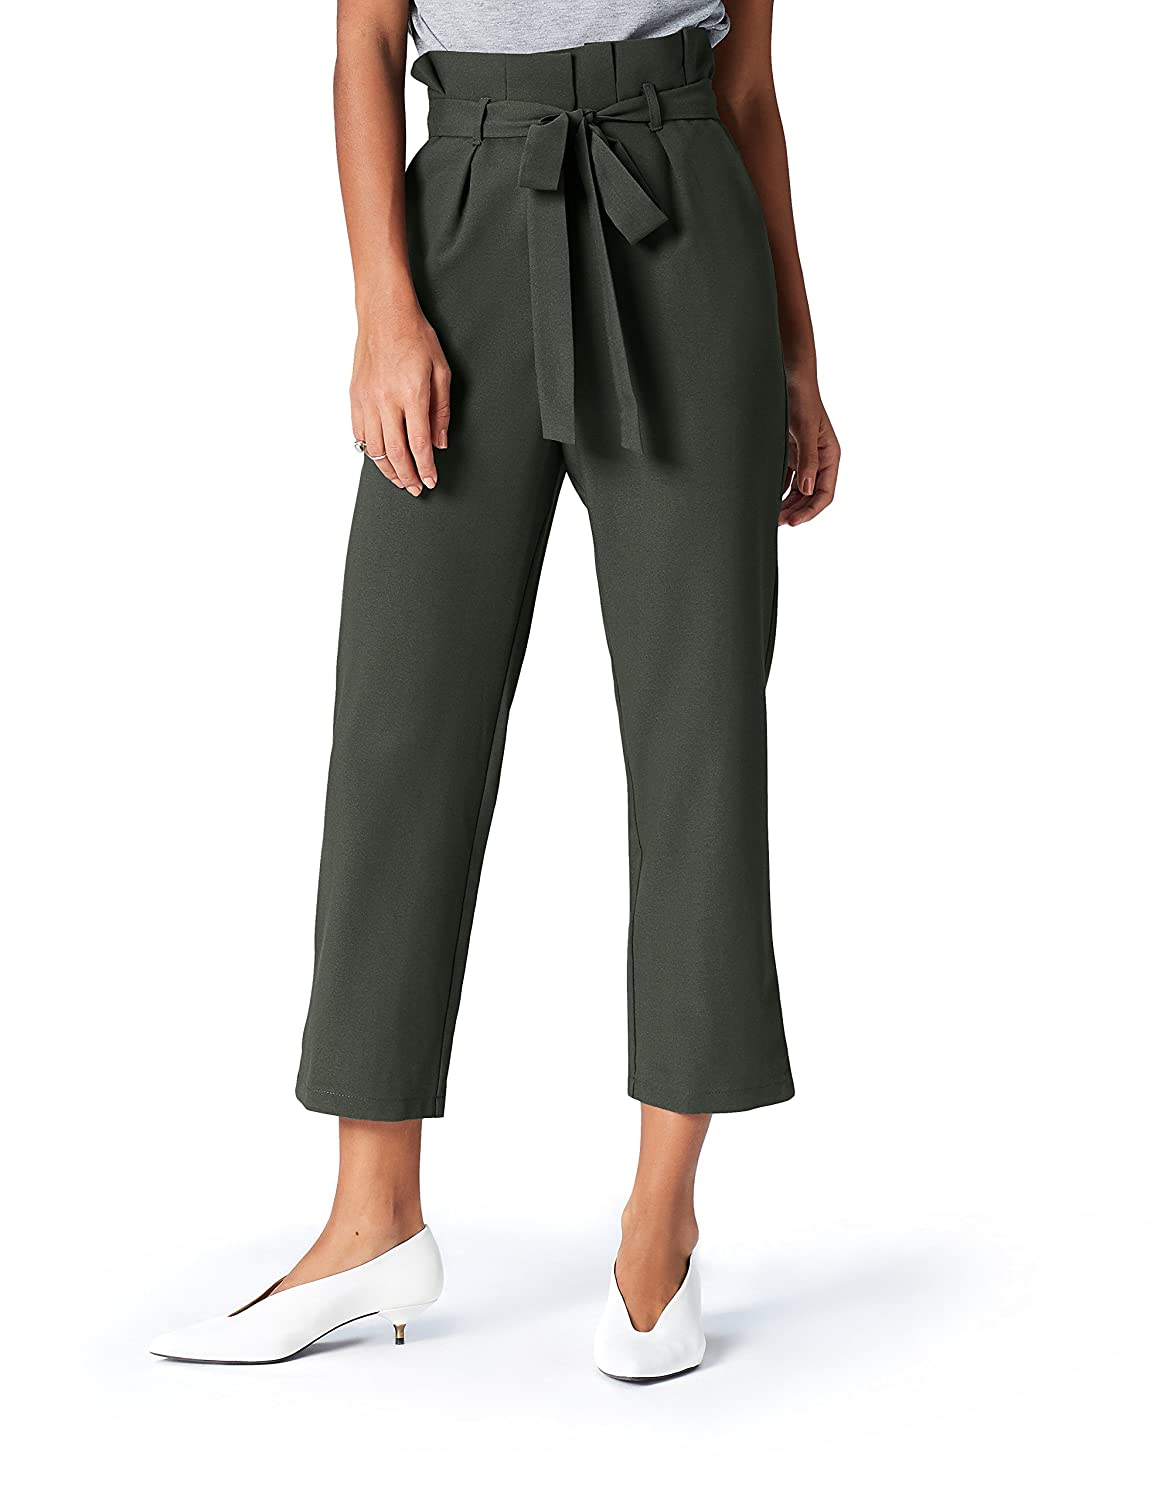 find. Paperbag Waist_AN5488 - Pantalones Mujer